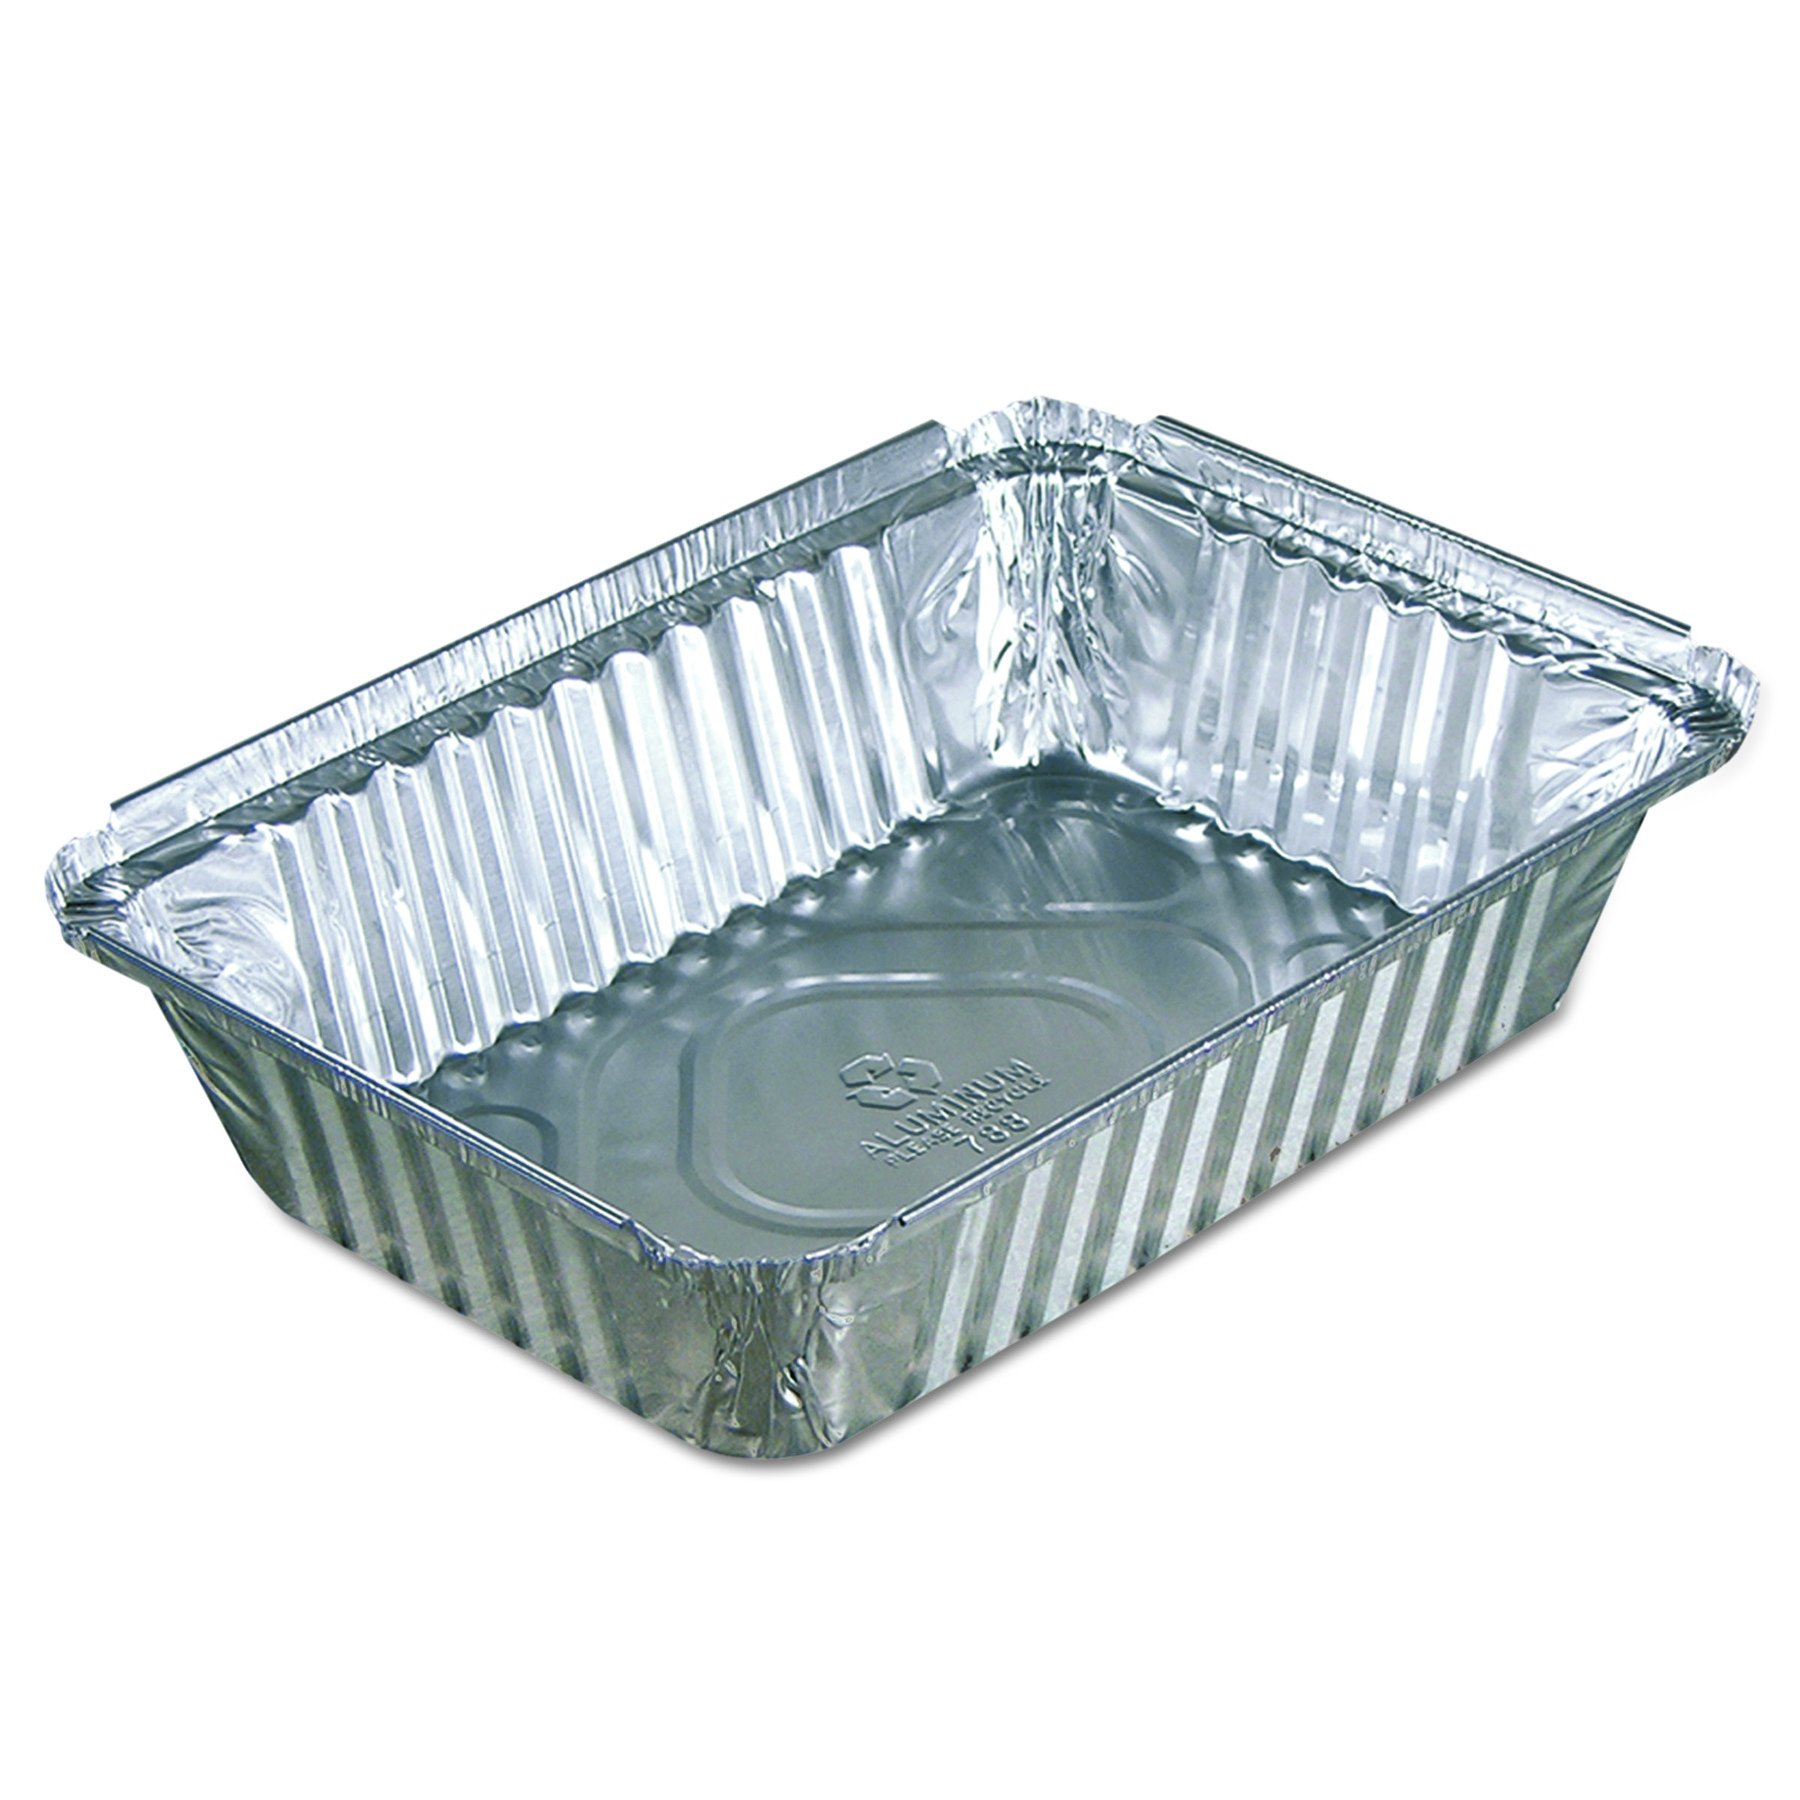 Pactiv Y78830 Oblong Food Pans, 36 oz, 1.61'' Length, 0.76'' Width, 1.39'' Height, Aluminum (Pack of 400)